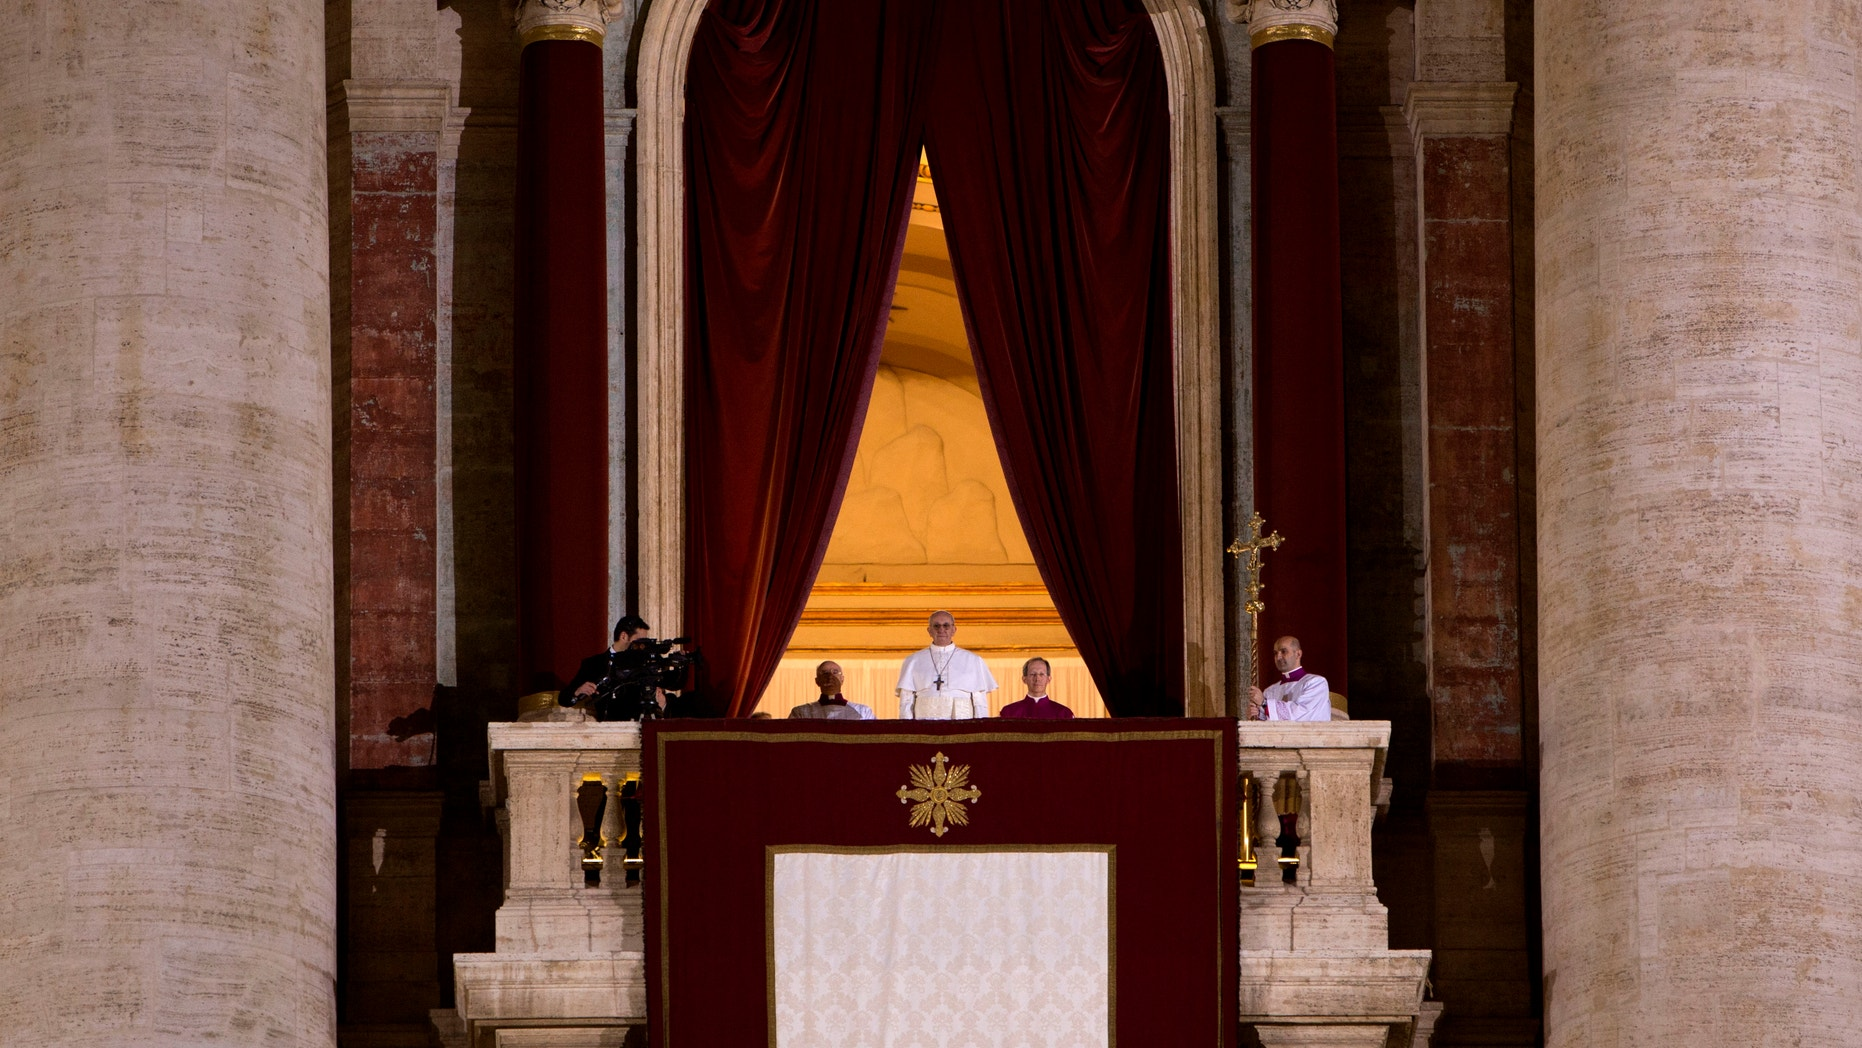 March 13, 2013 - Pope Francis, white figure at center of the balcony of St. Peter's Basilica, looks at the crowd in St. Peter's Square, at the Vatican.